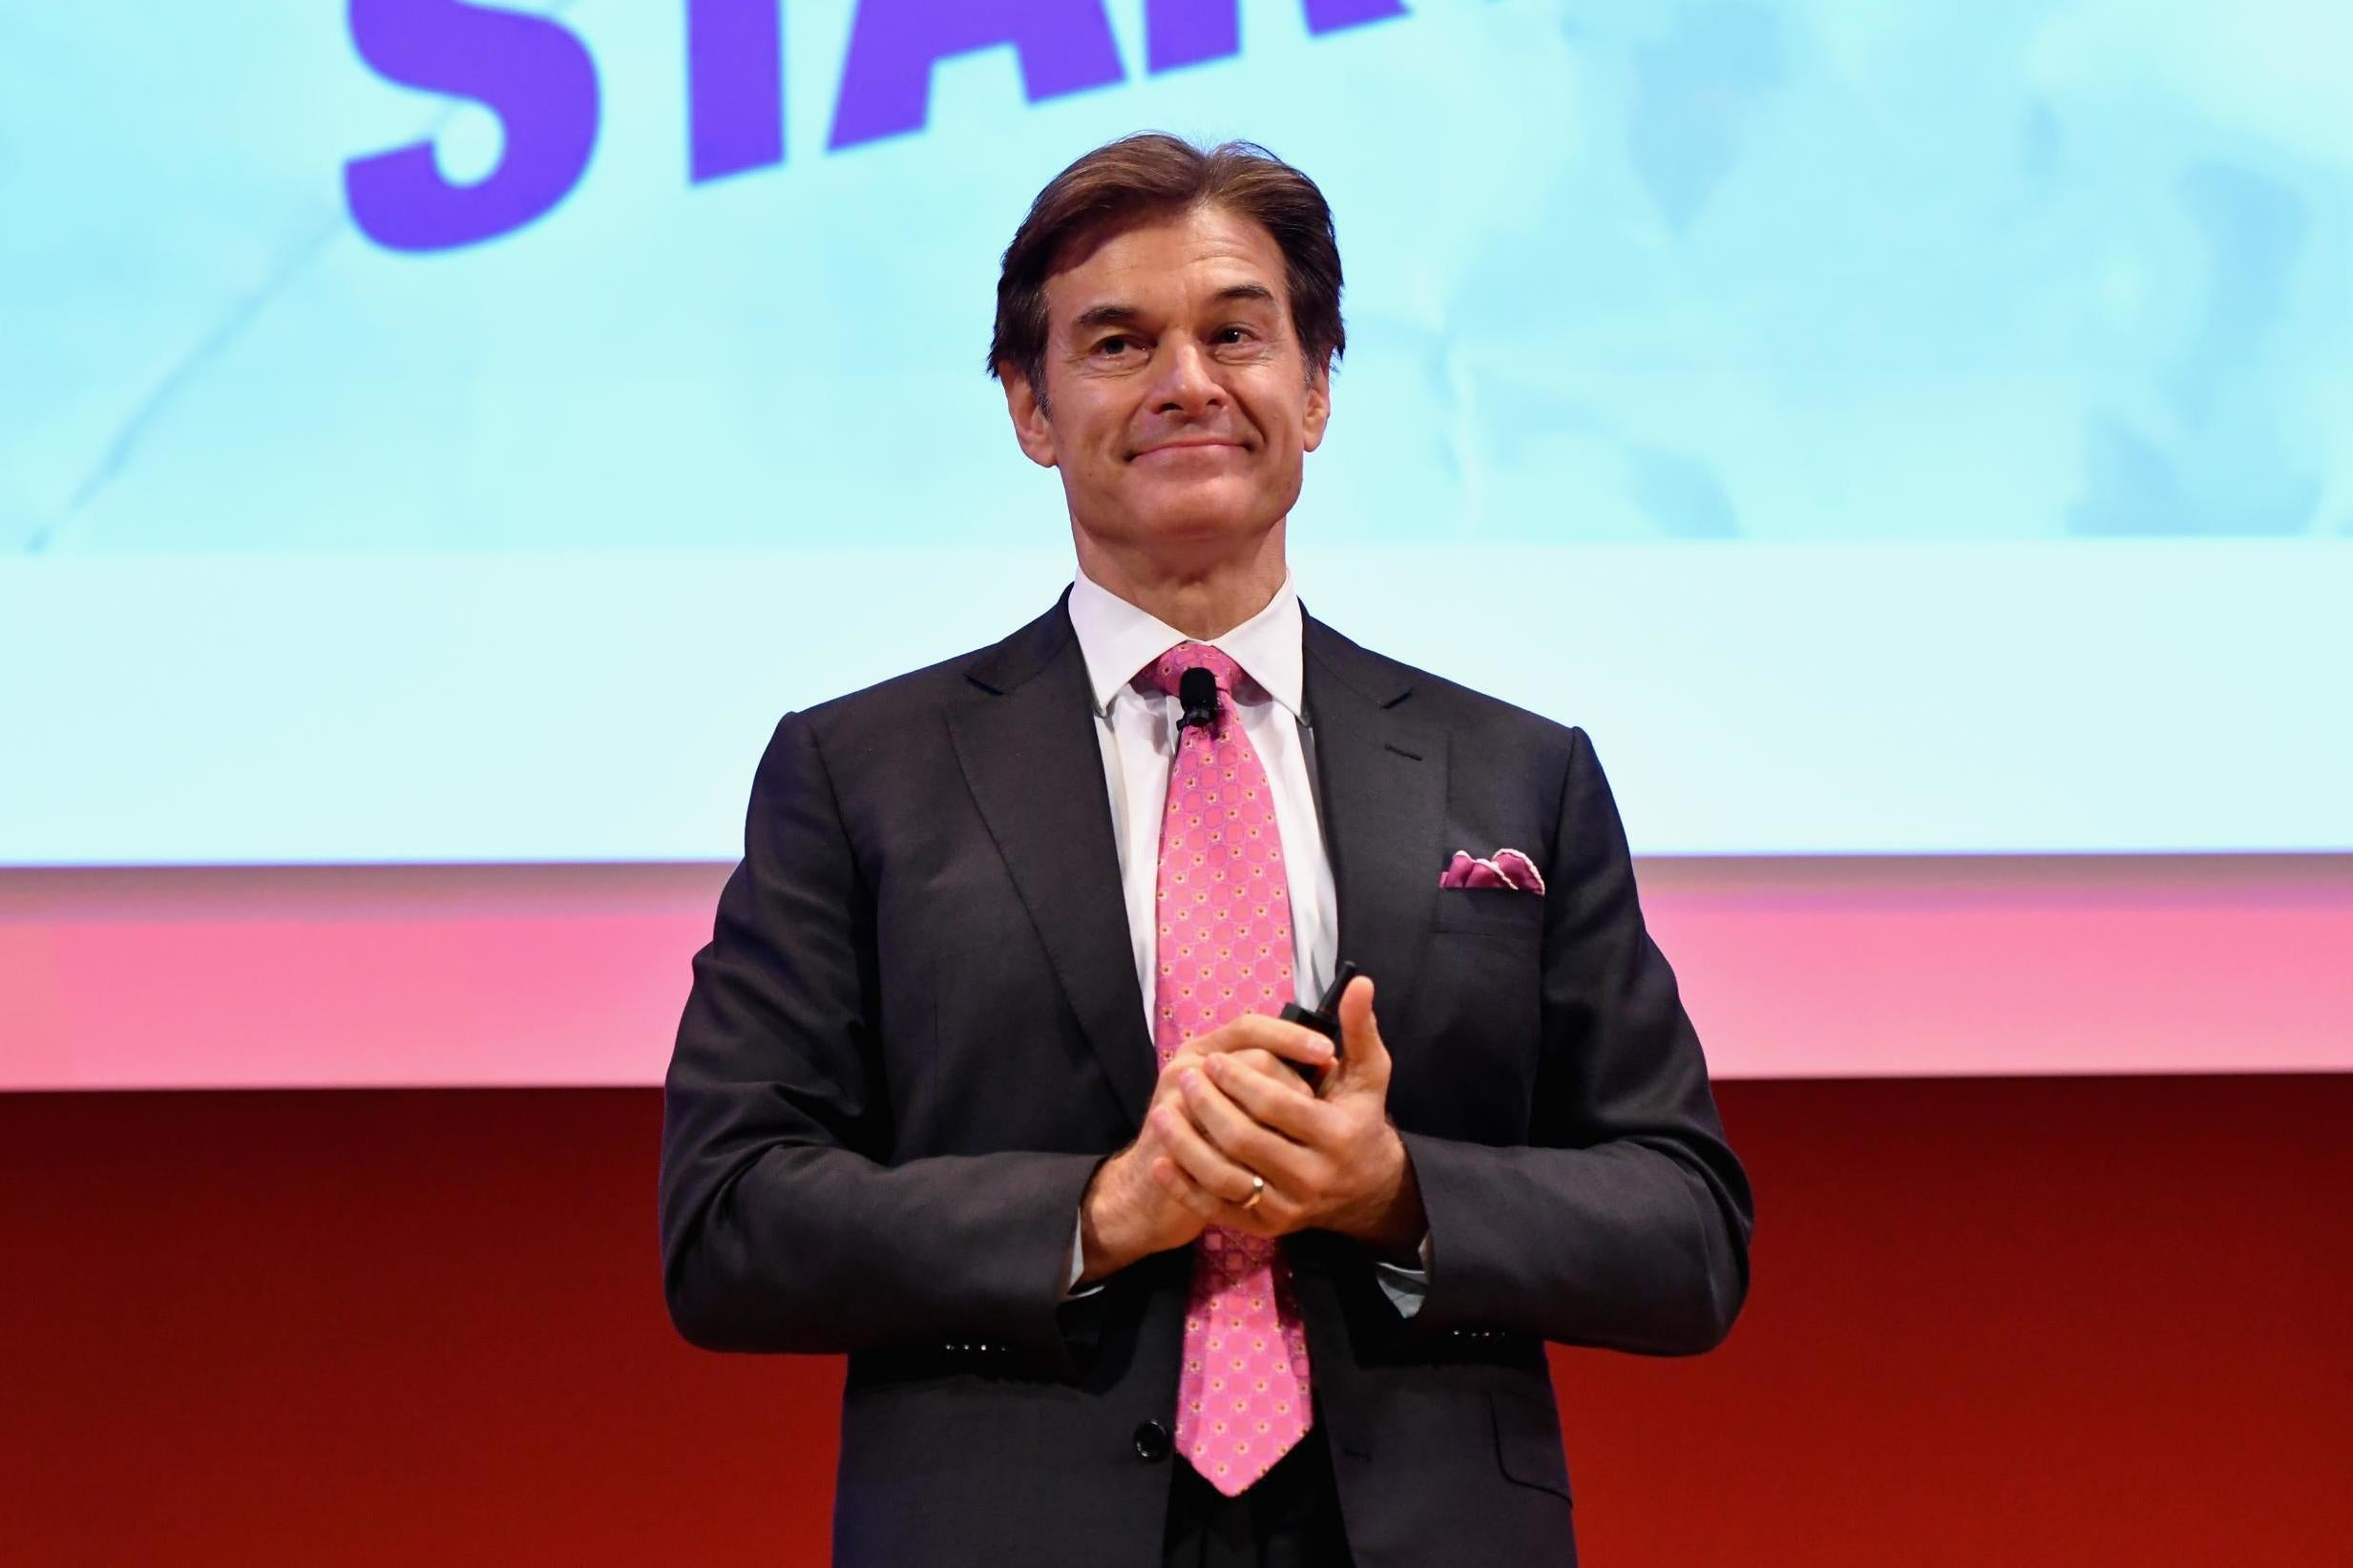 Dr Oz says eating breakfast should be 'cancelled' because 'most Americans are addicted to food'